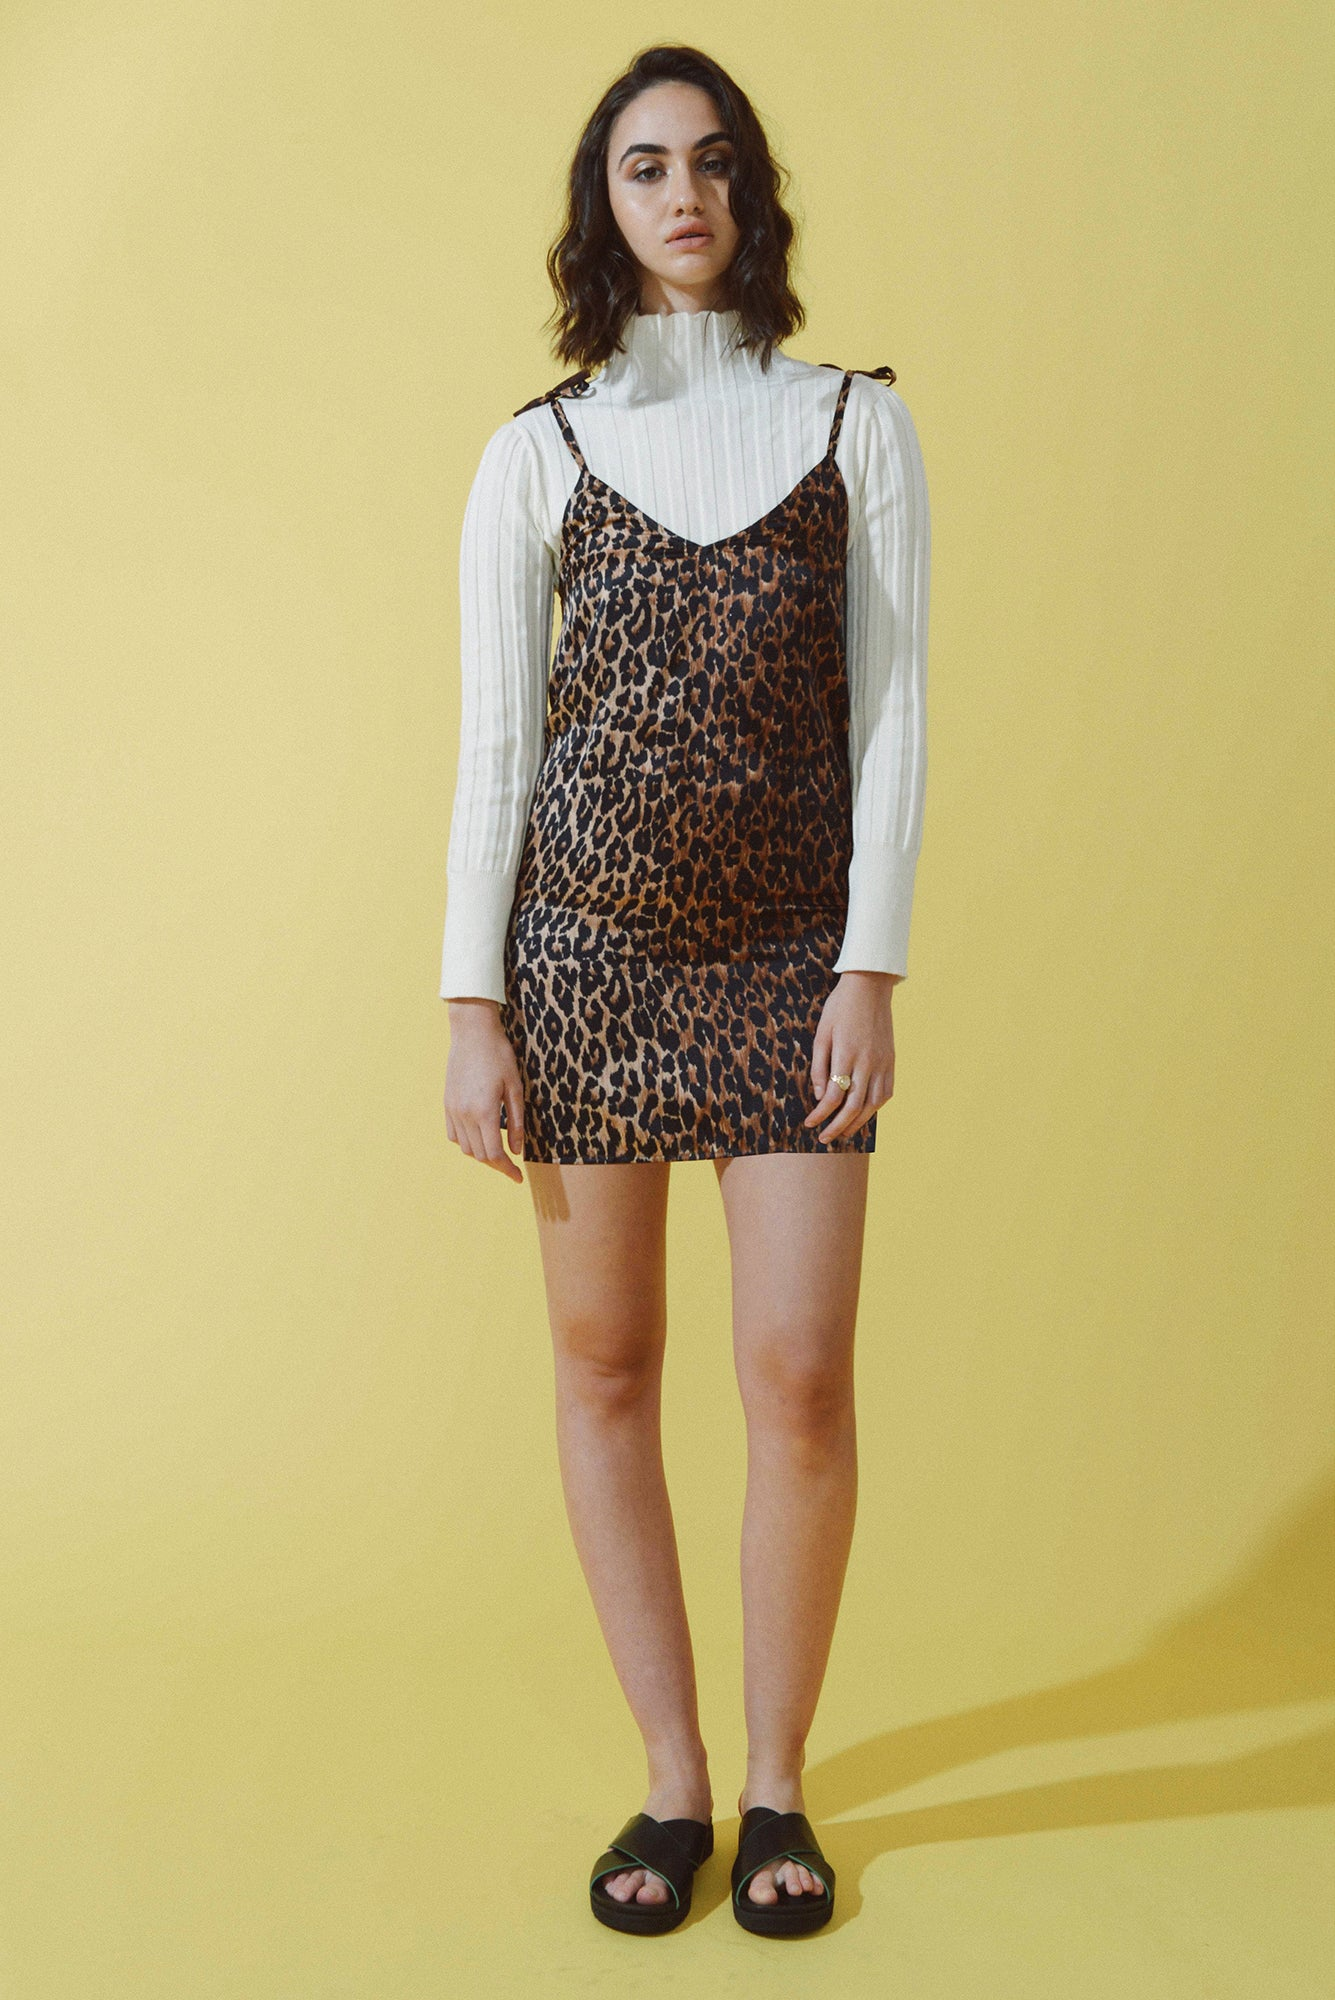 Anna Slip Dress in Animal Print from Mayamiko